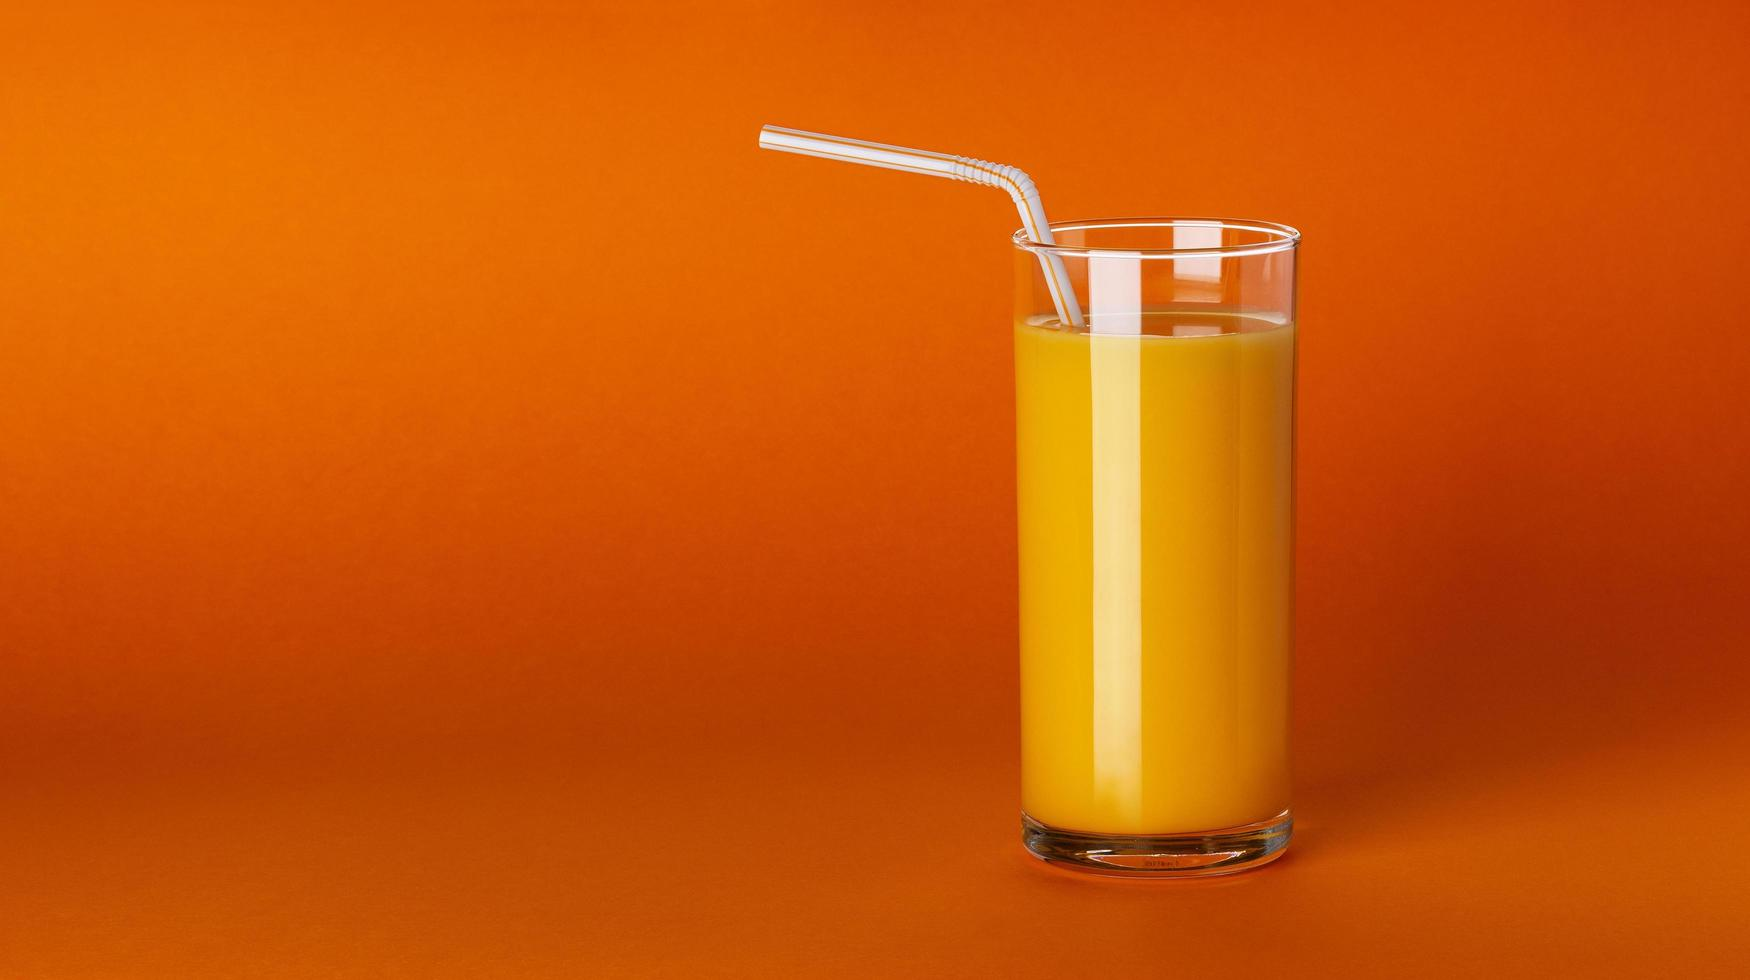 A glass of orange juice on orange background with copy space photo